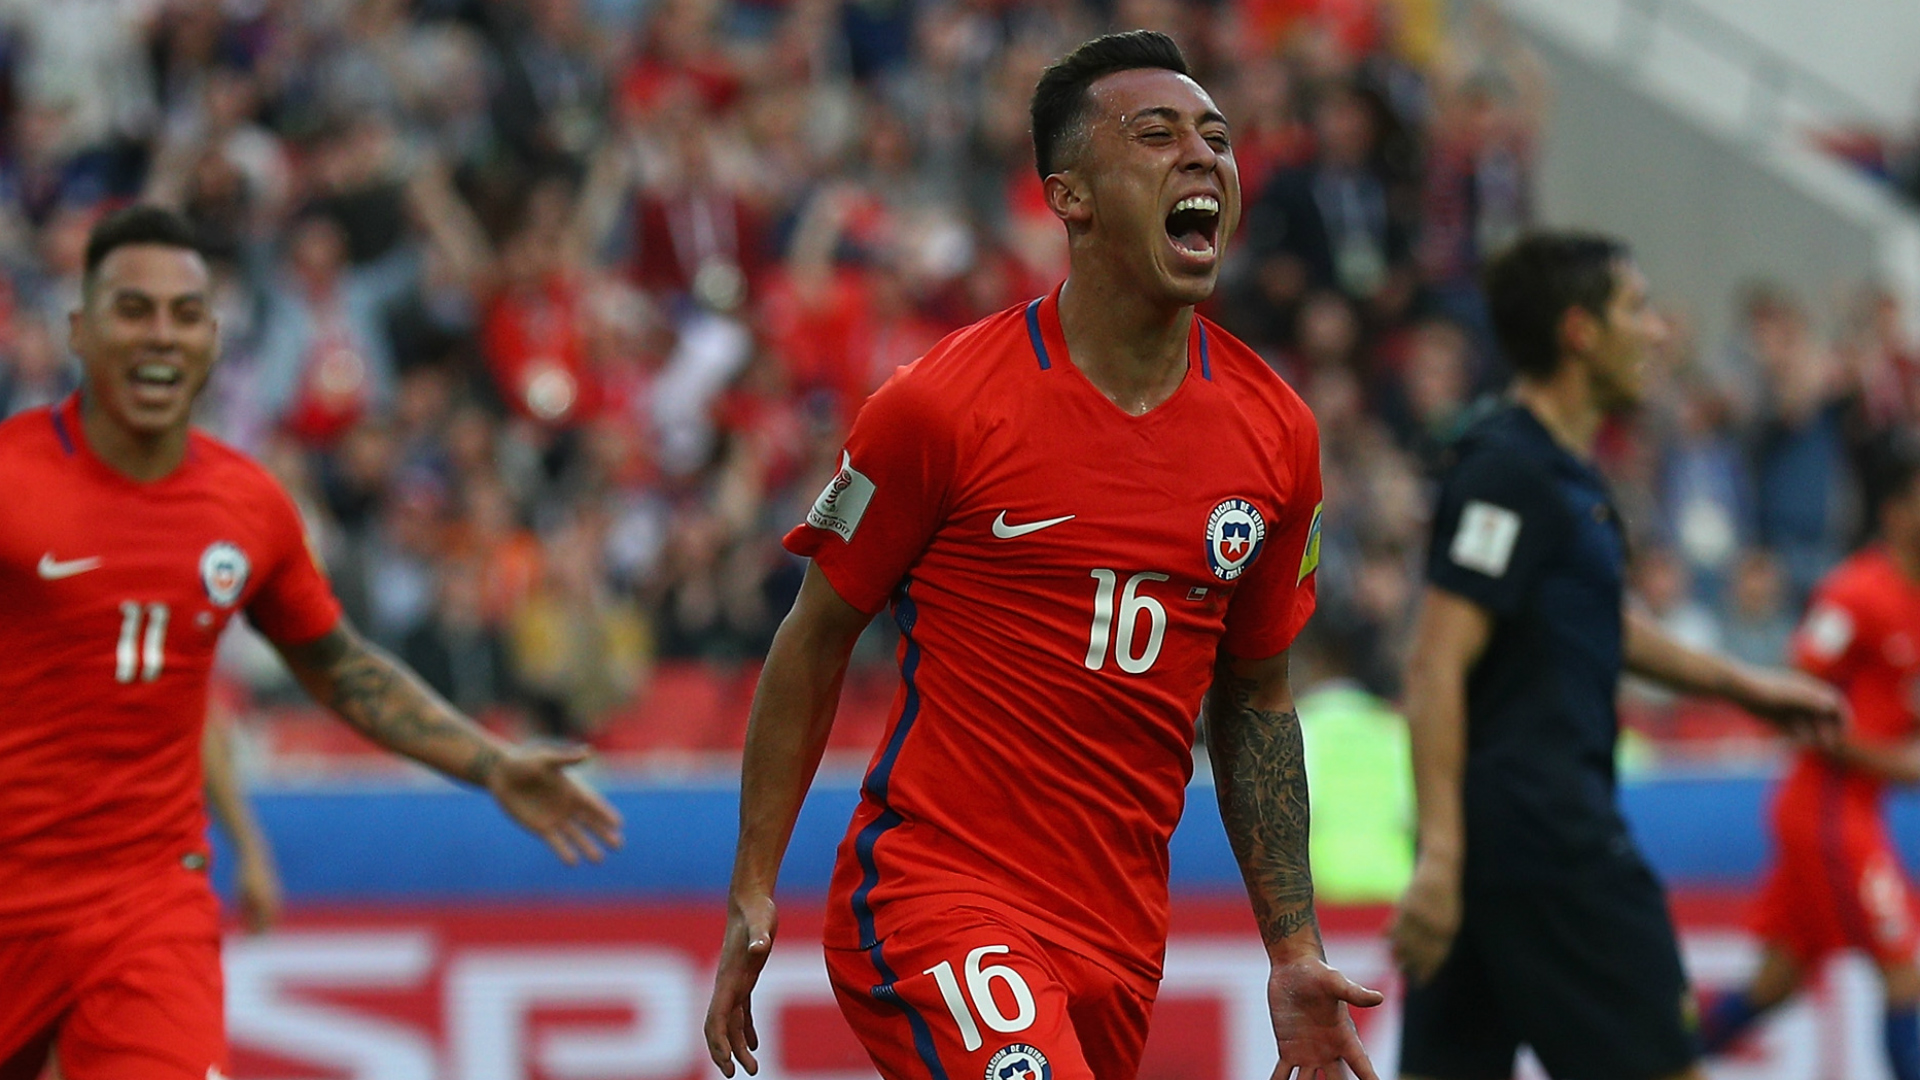 Germany, Chile advance to Confederations Cup semifinals